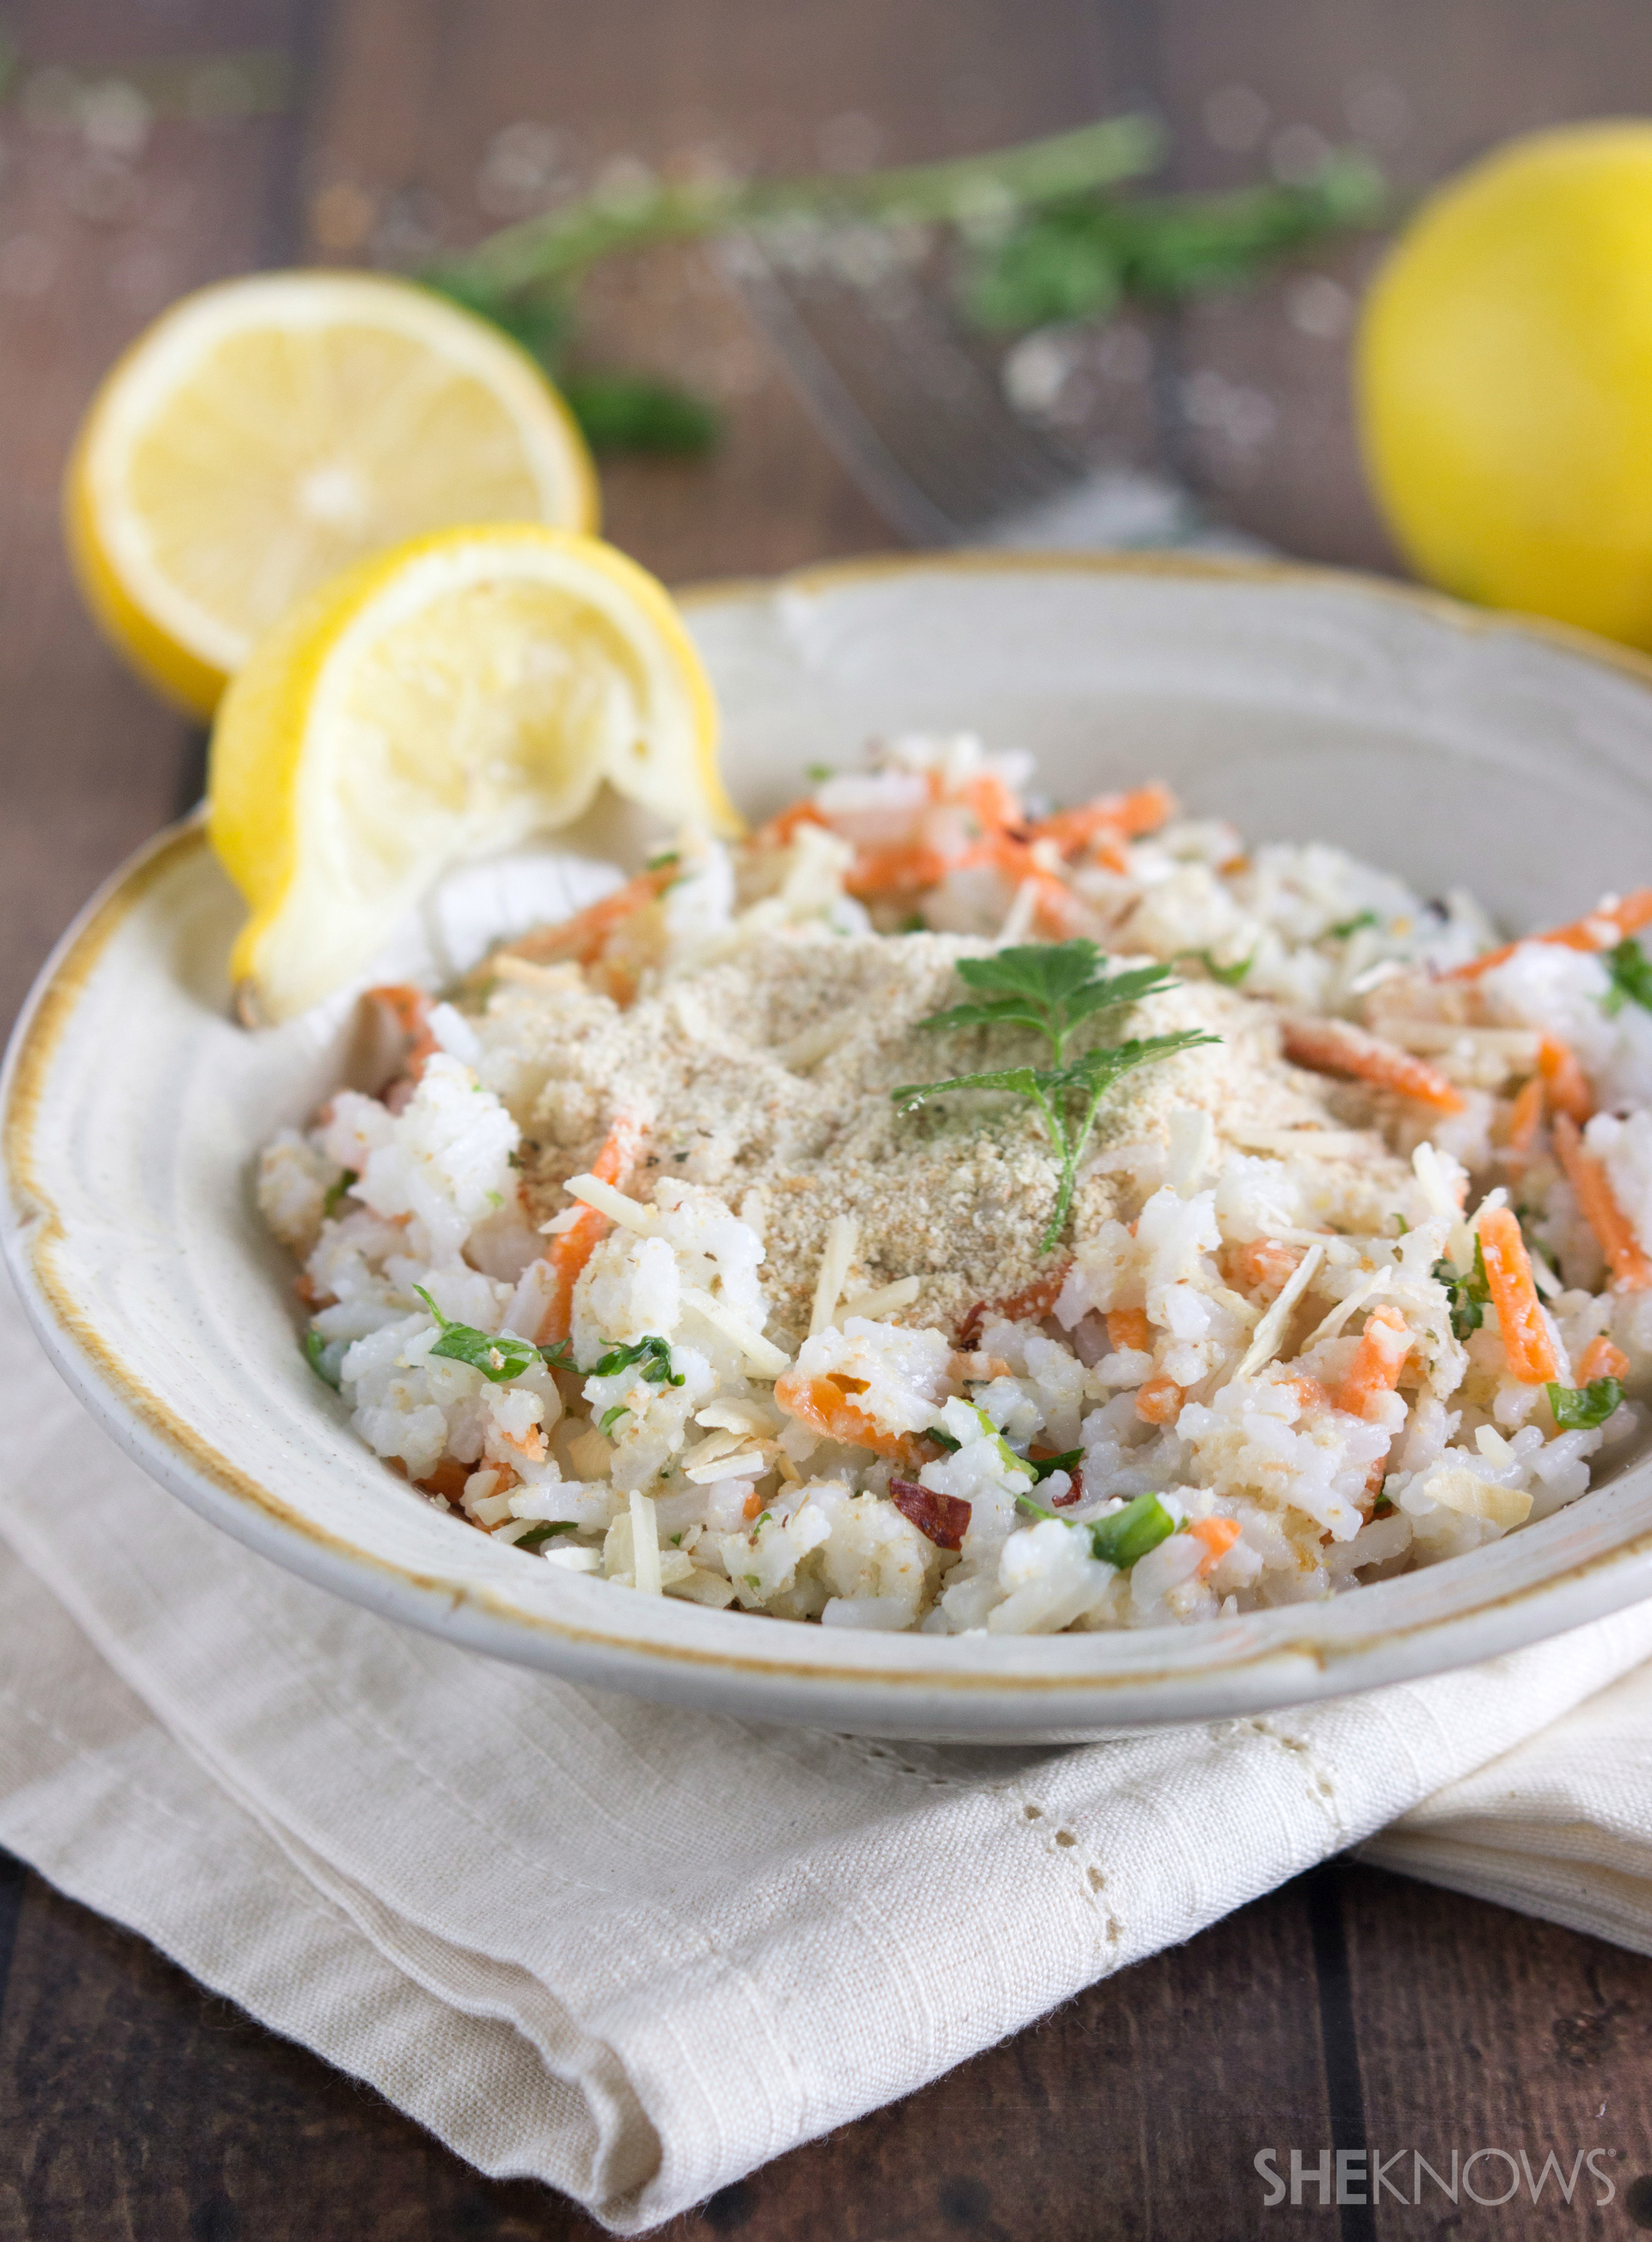 Lemon-parsley rice with shredded carrots